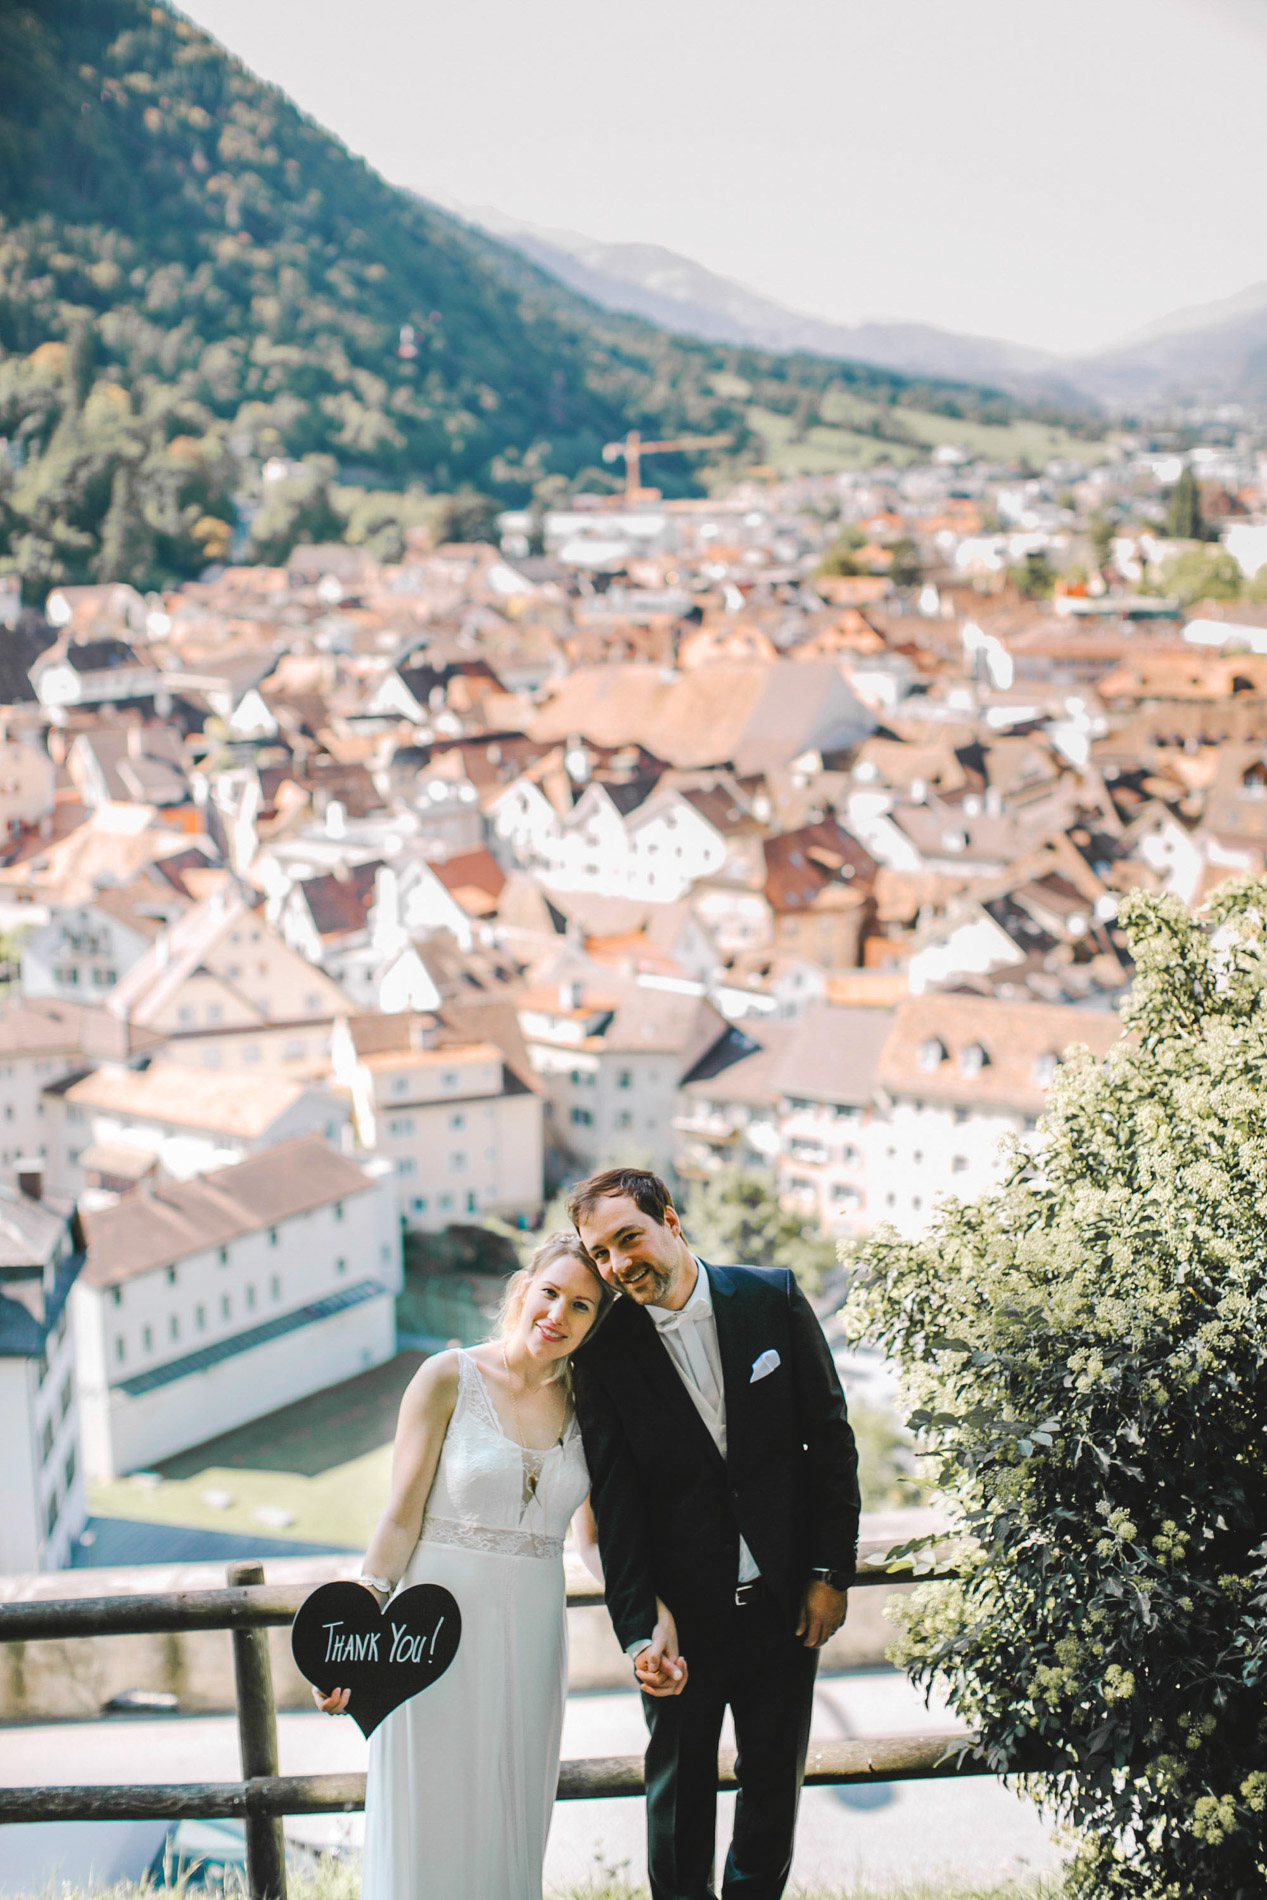 hochzeitsfotografie-schweiz_wedding-photographer-switzerland-europe_Bendik-Photography-036